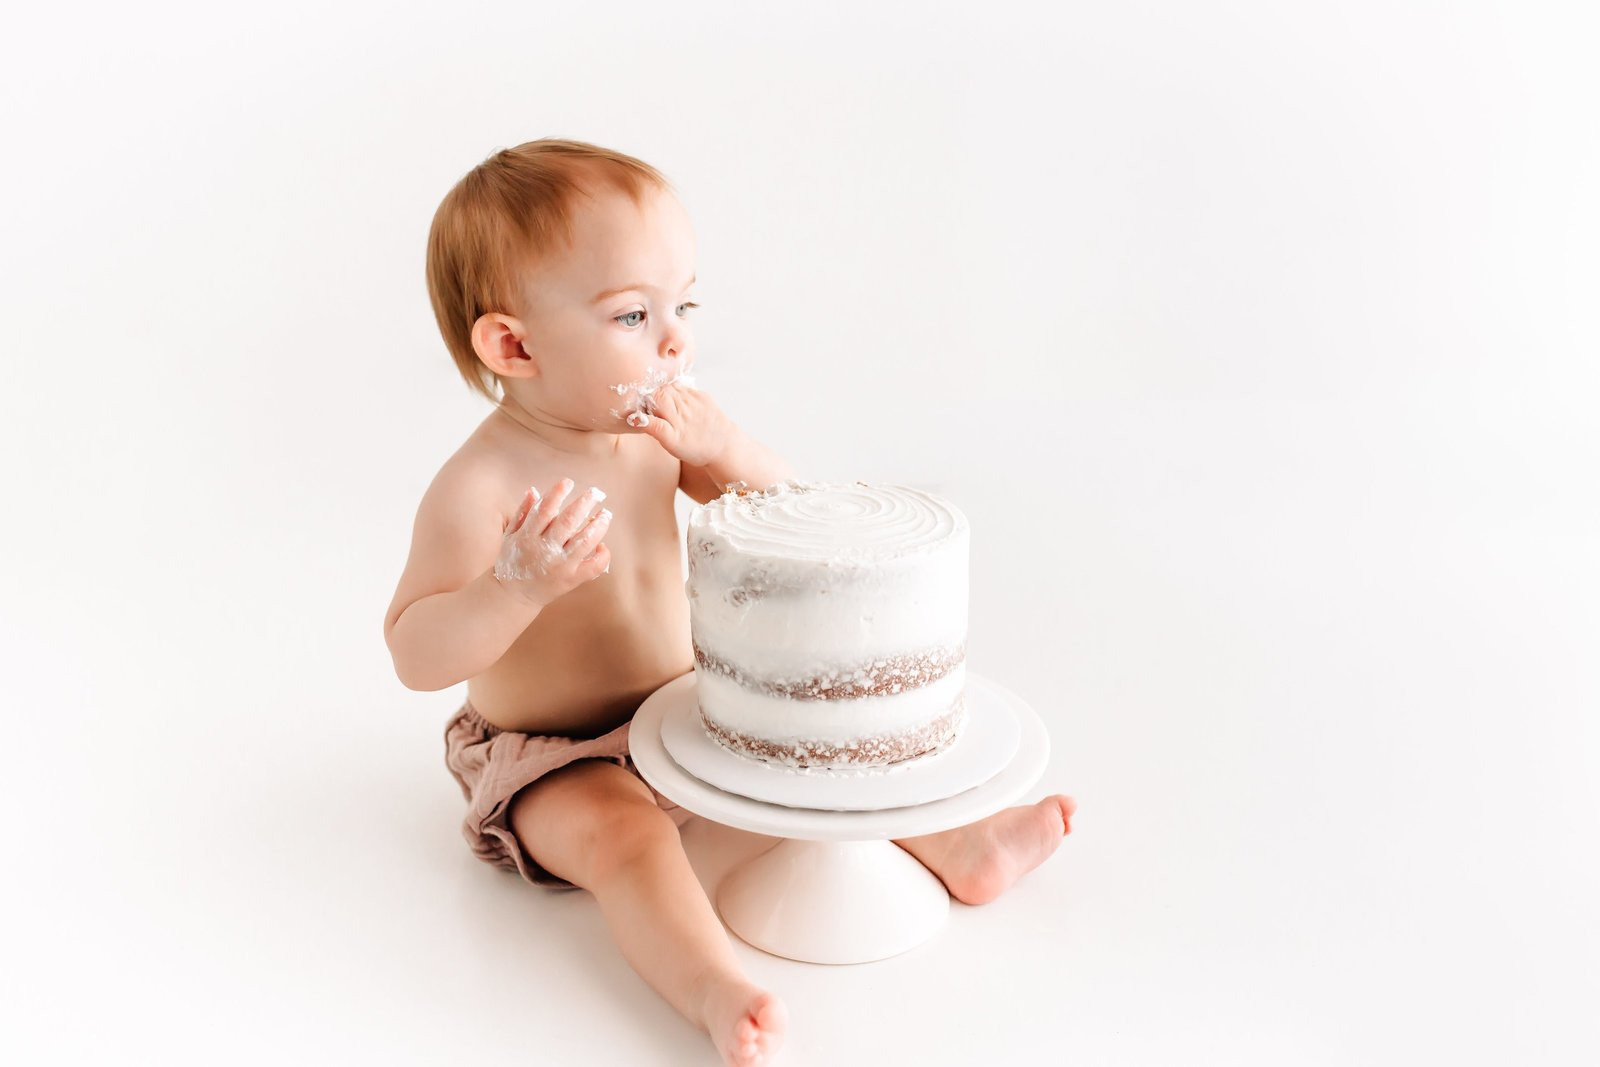 St_Louis_Baby_Photographer_Kelly_Laramore_Photography_90